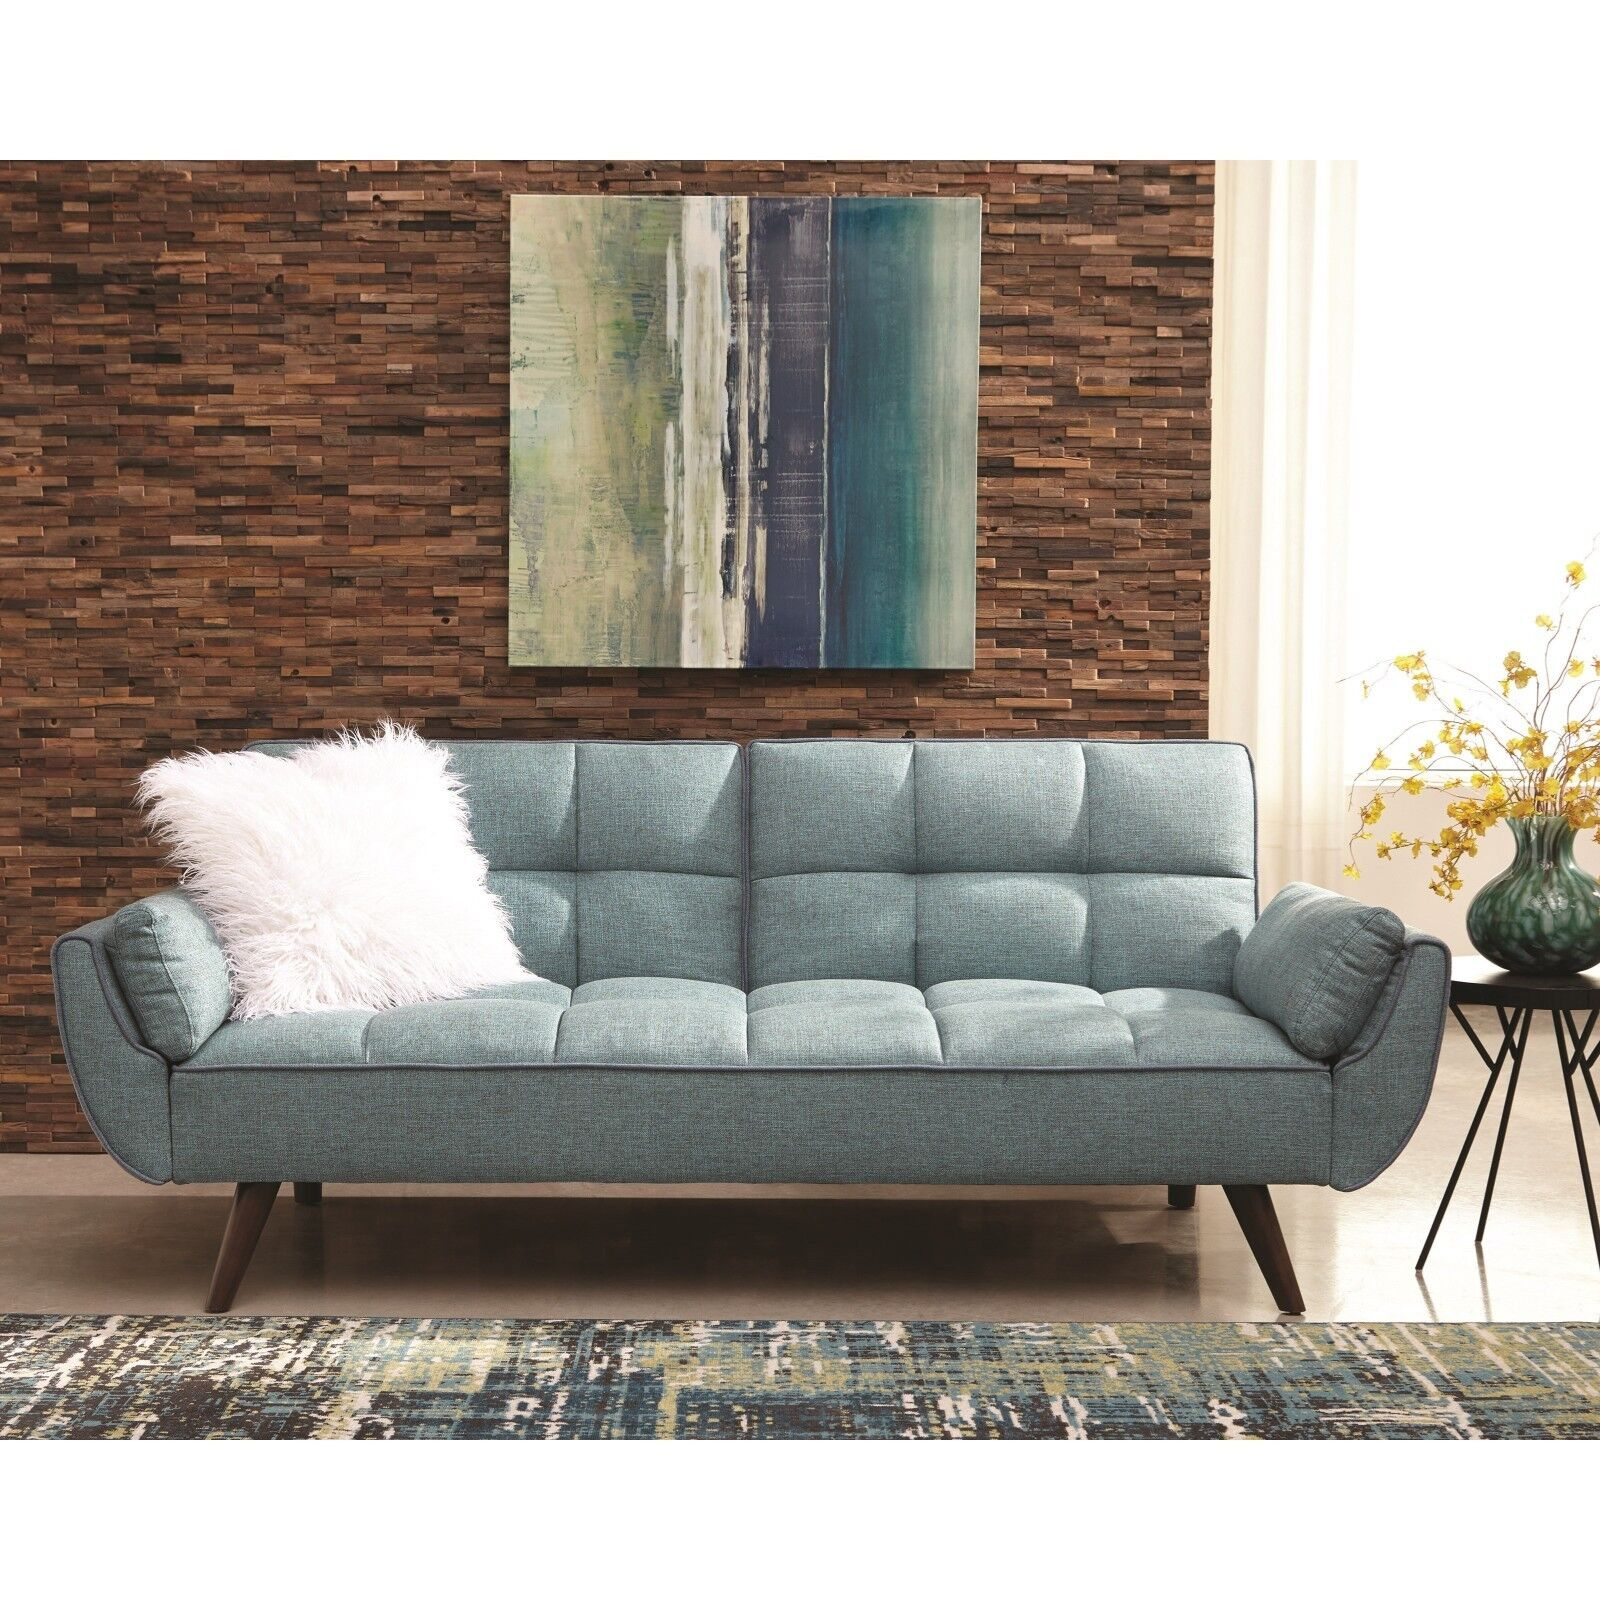 PERFECT FOR DORM ROOM TURQUOISE BLUE WOVEN SOFA BED FUTON LI